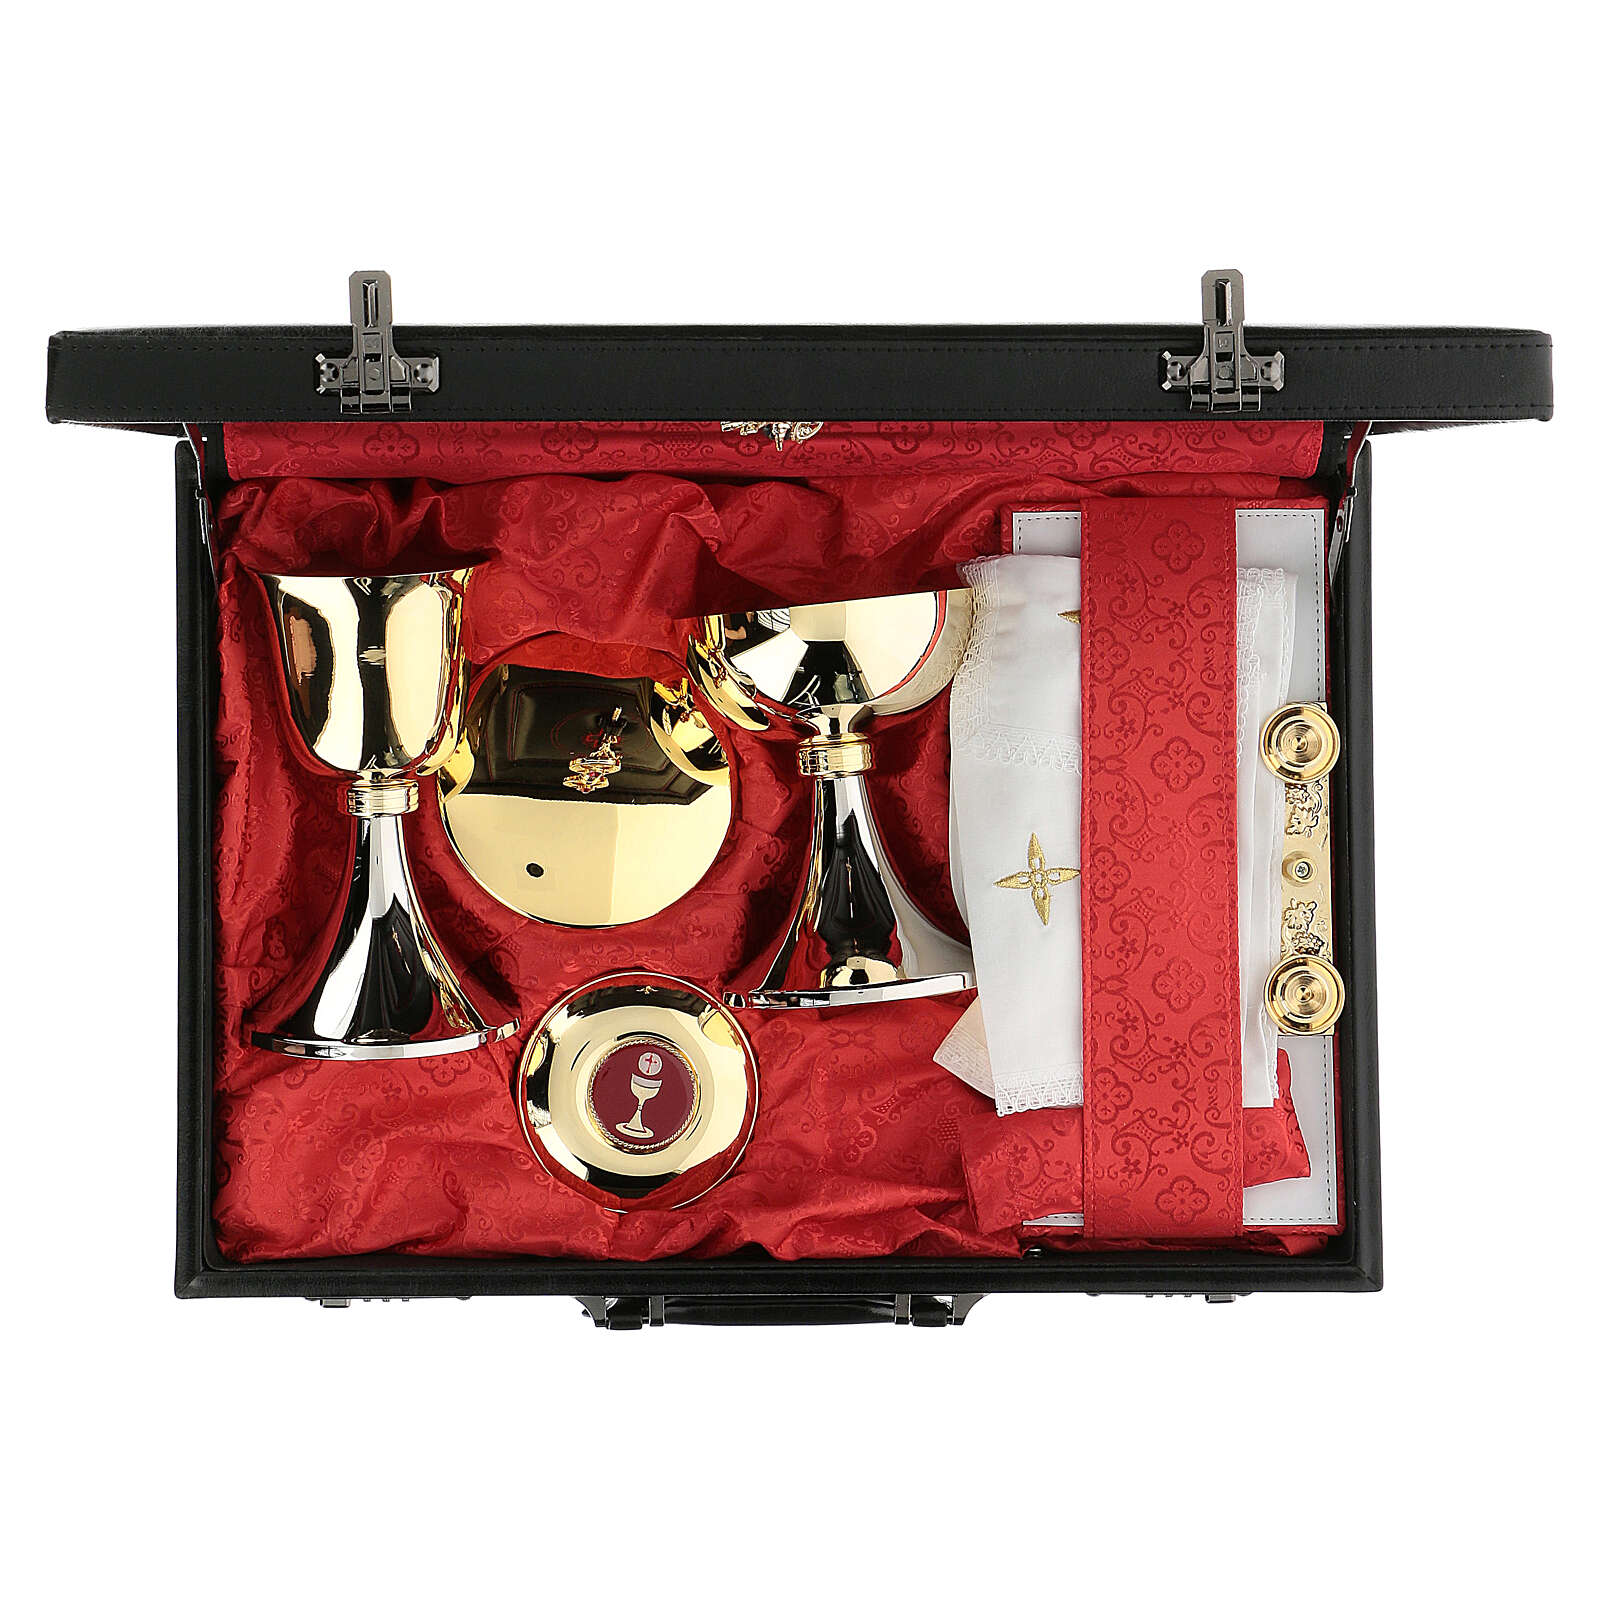 Artificial leather briefcase with combination lock and red satin 3